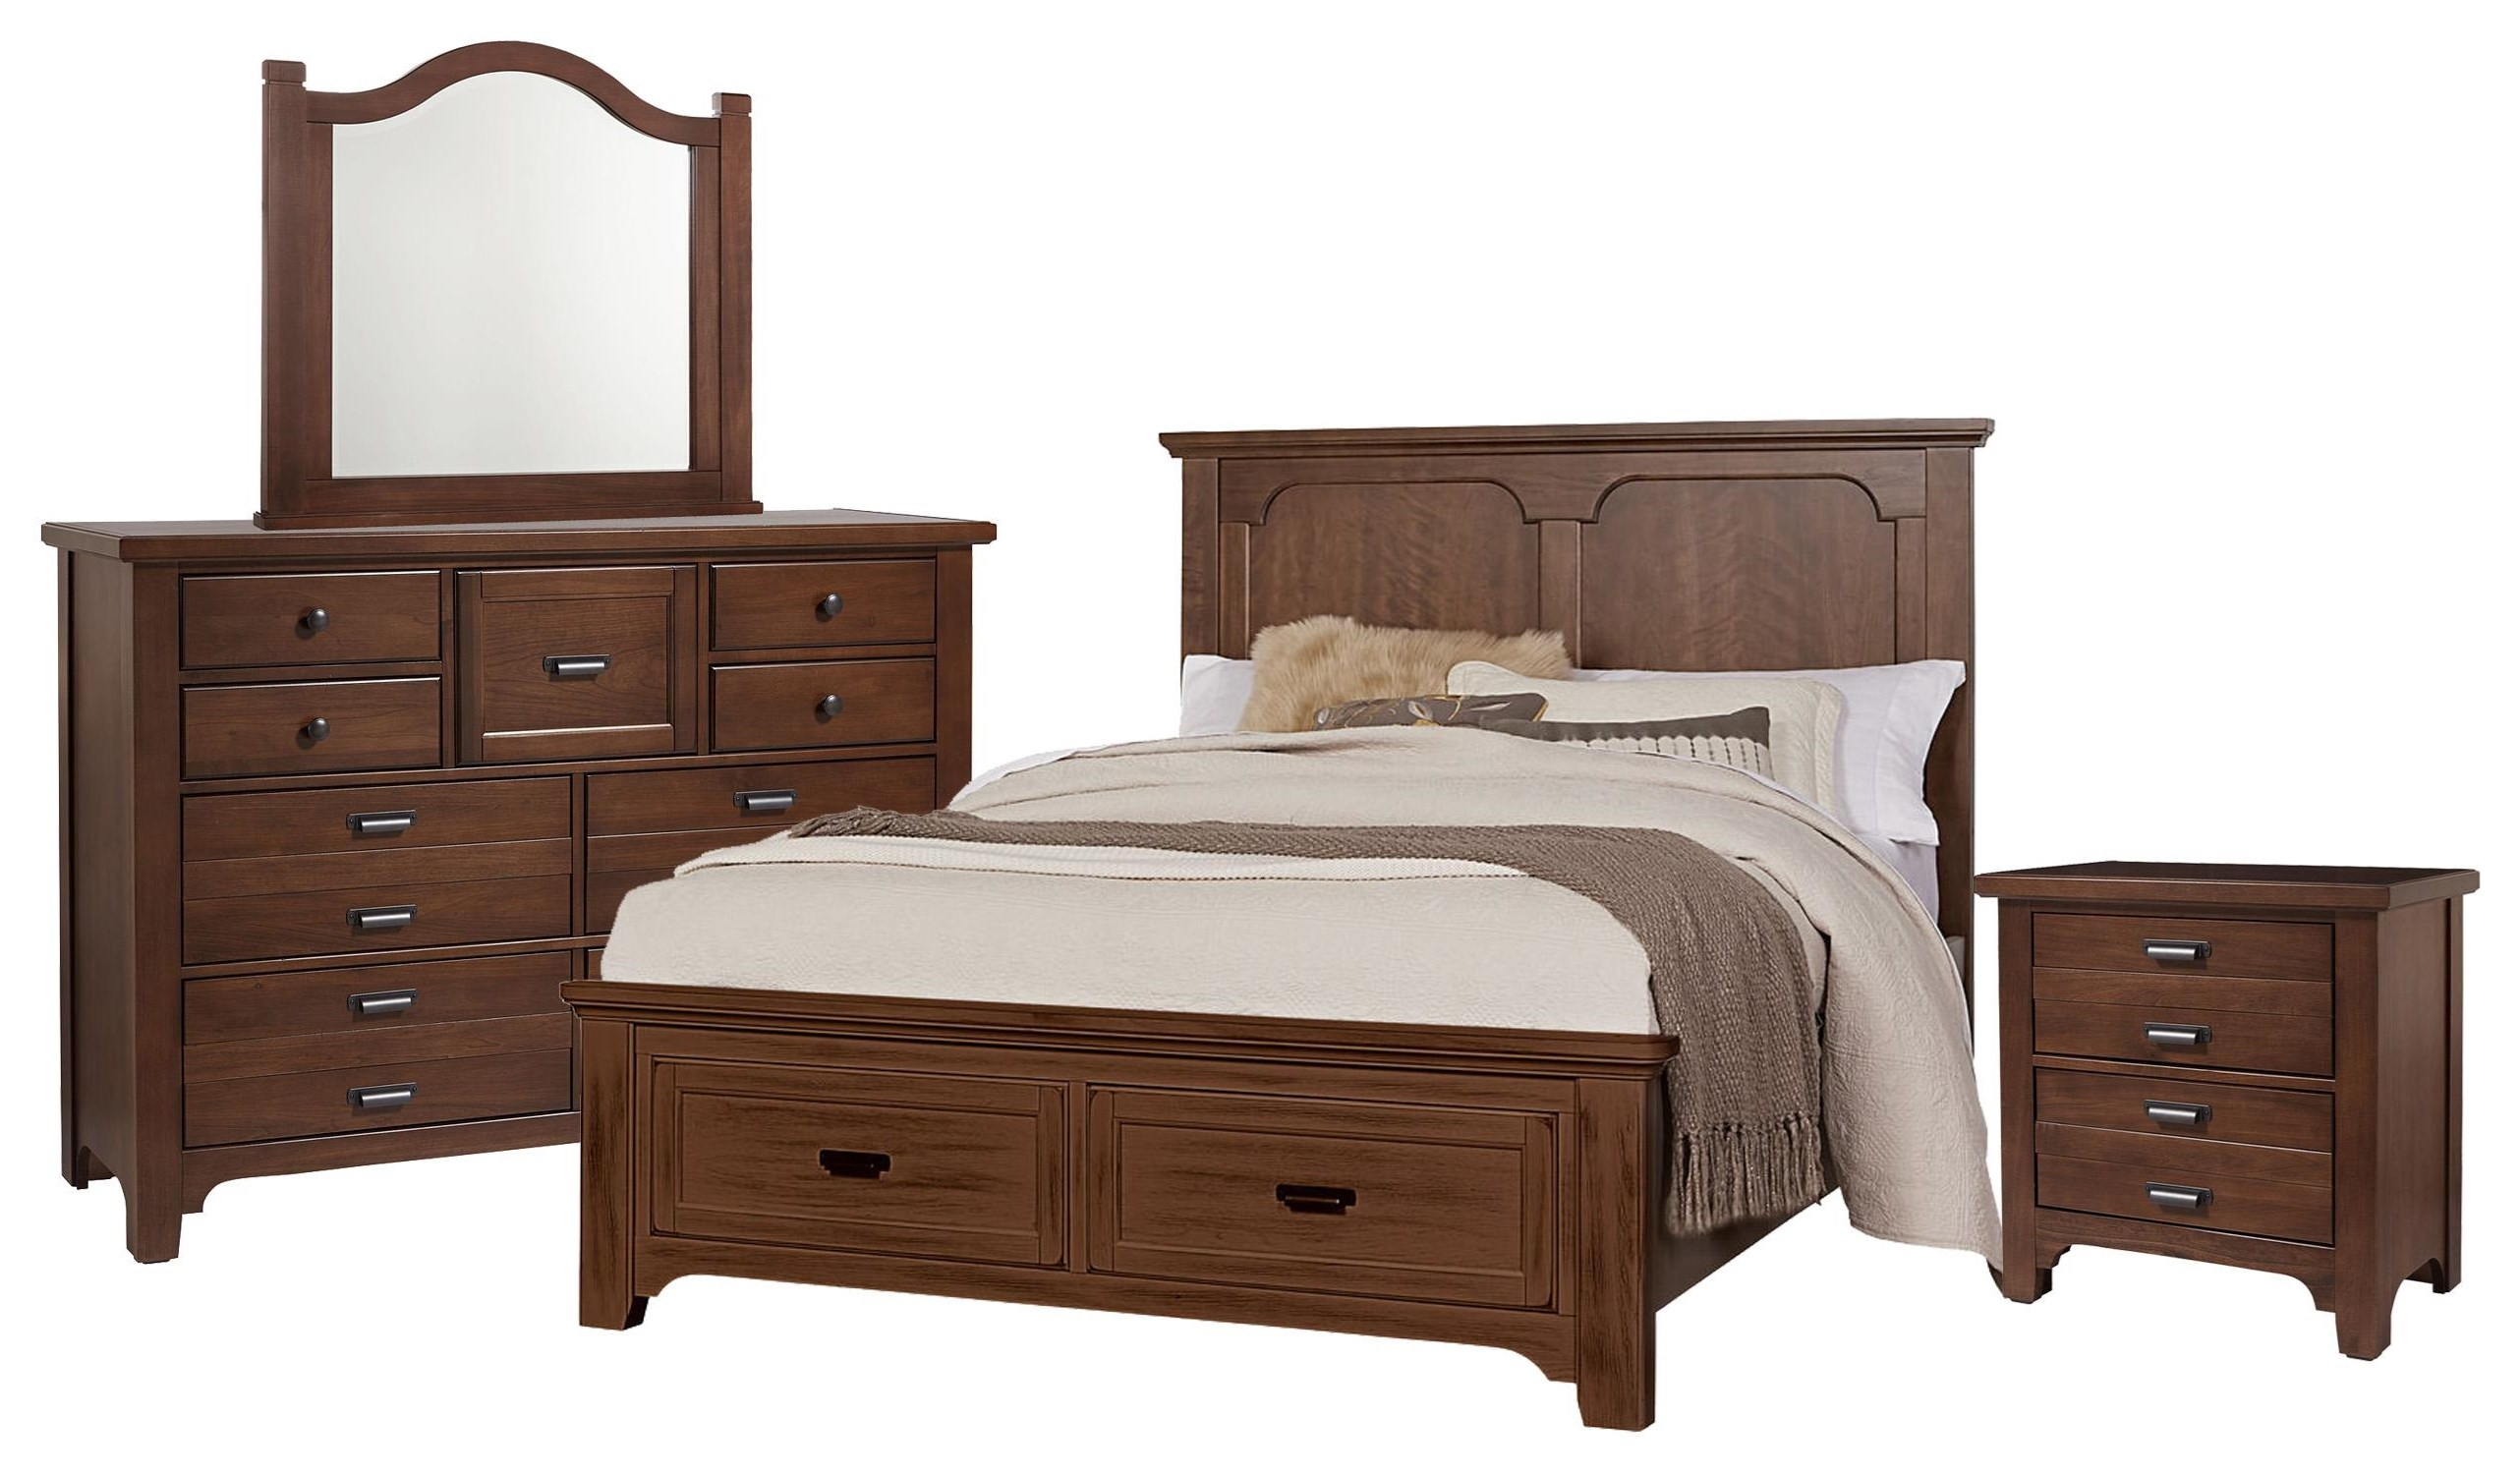 Bungalo Home King Panel Bed, Dresser, Mirror, Nig by Vaughan Bassett at Johnny Janosik